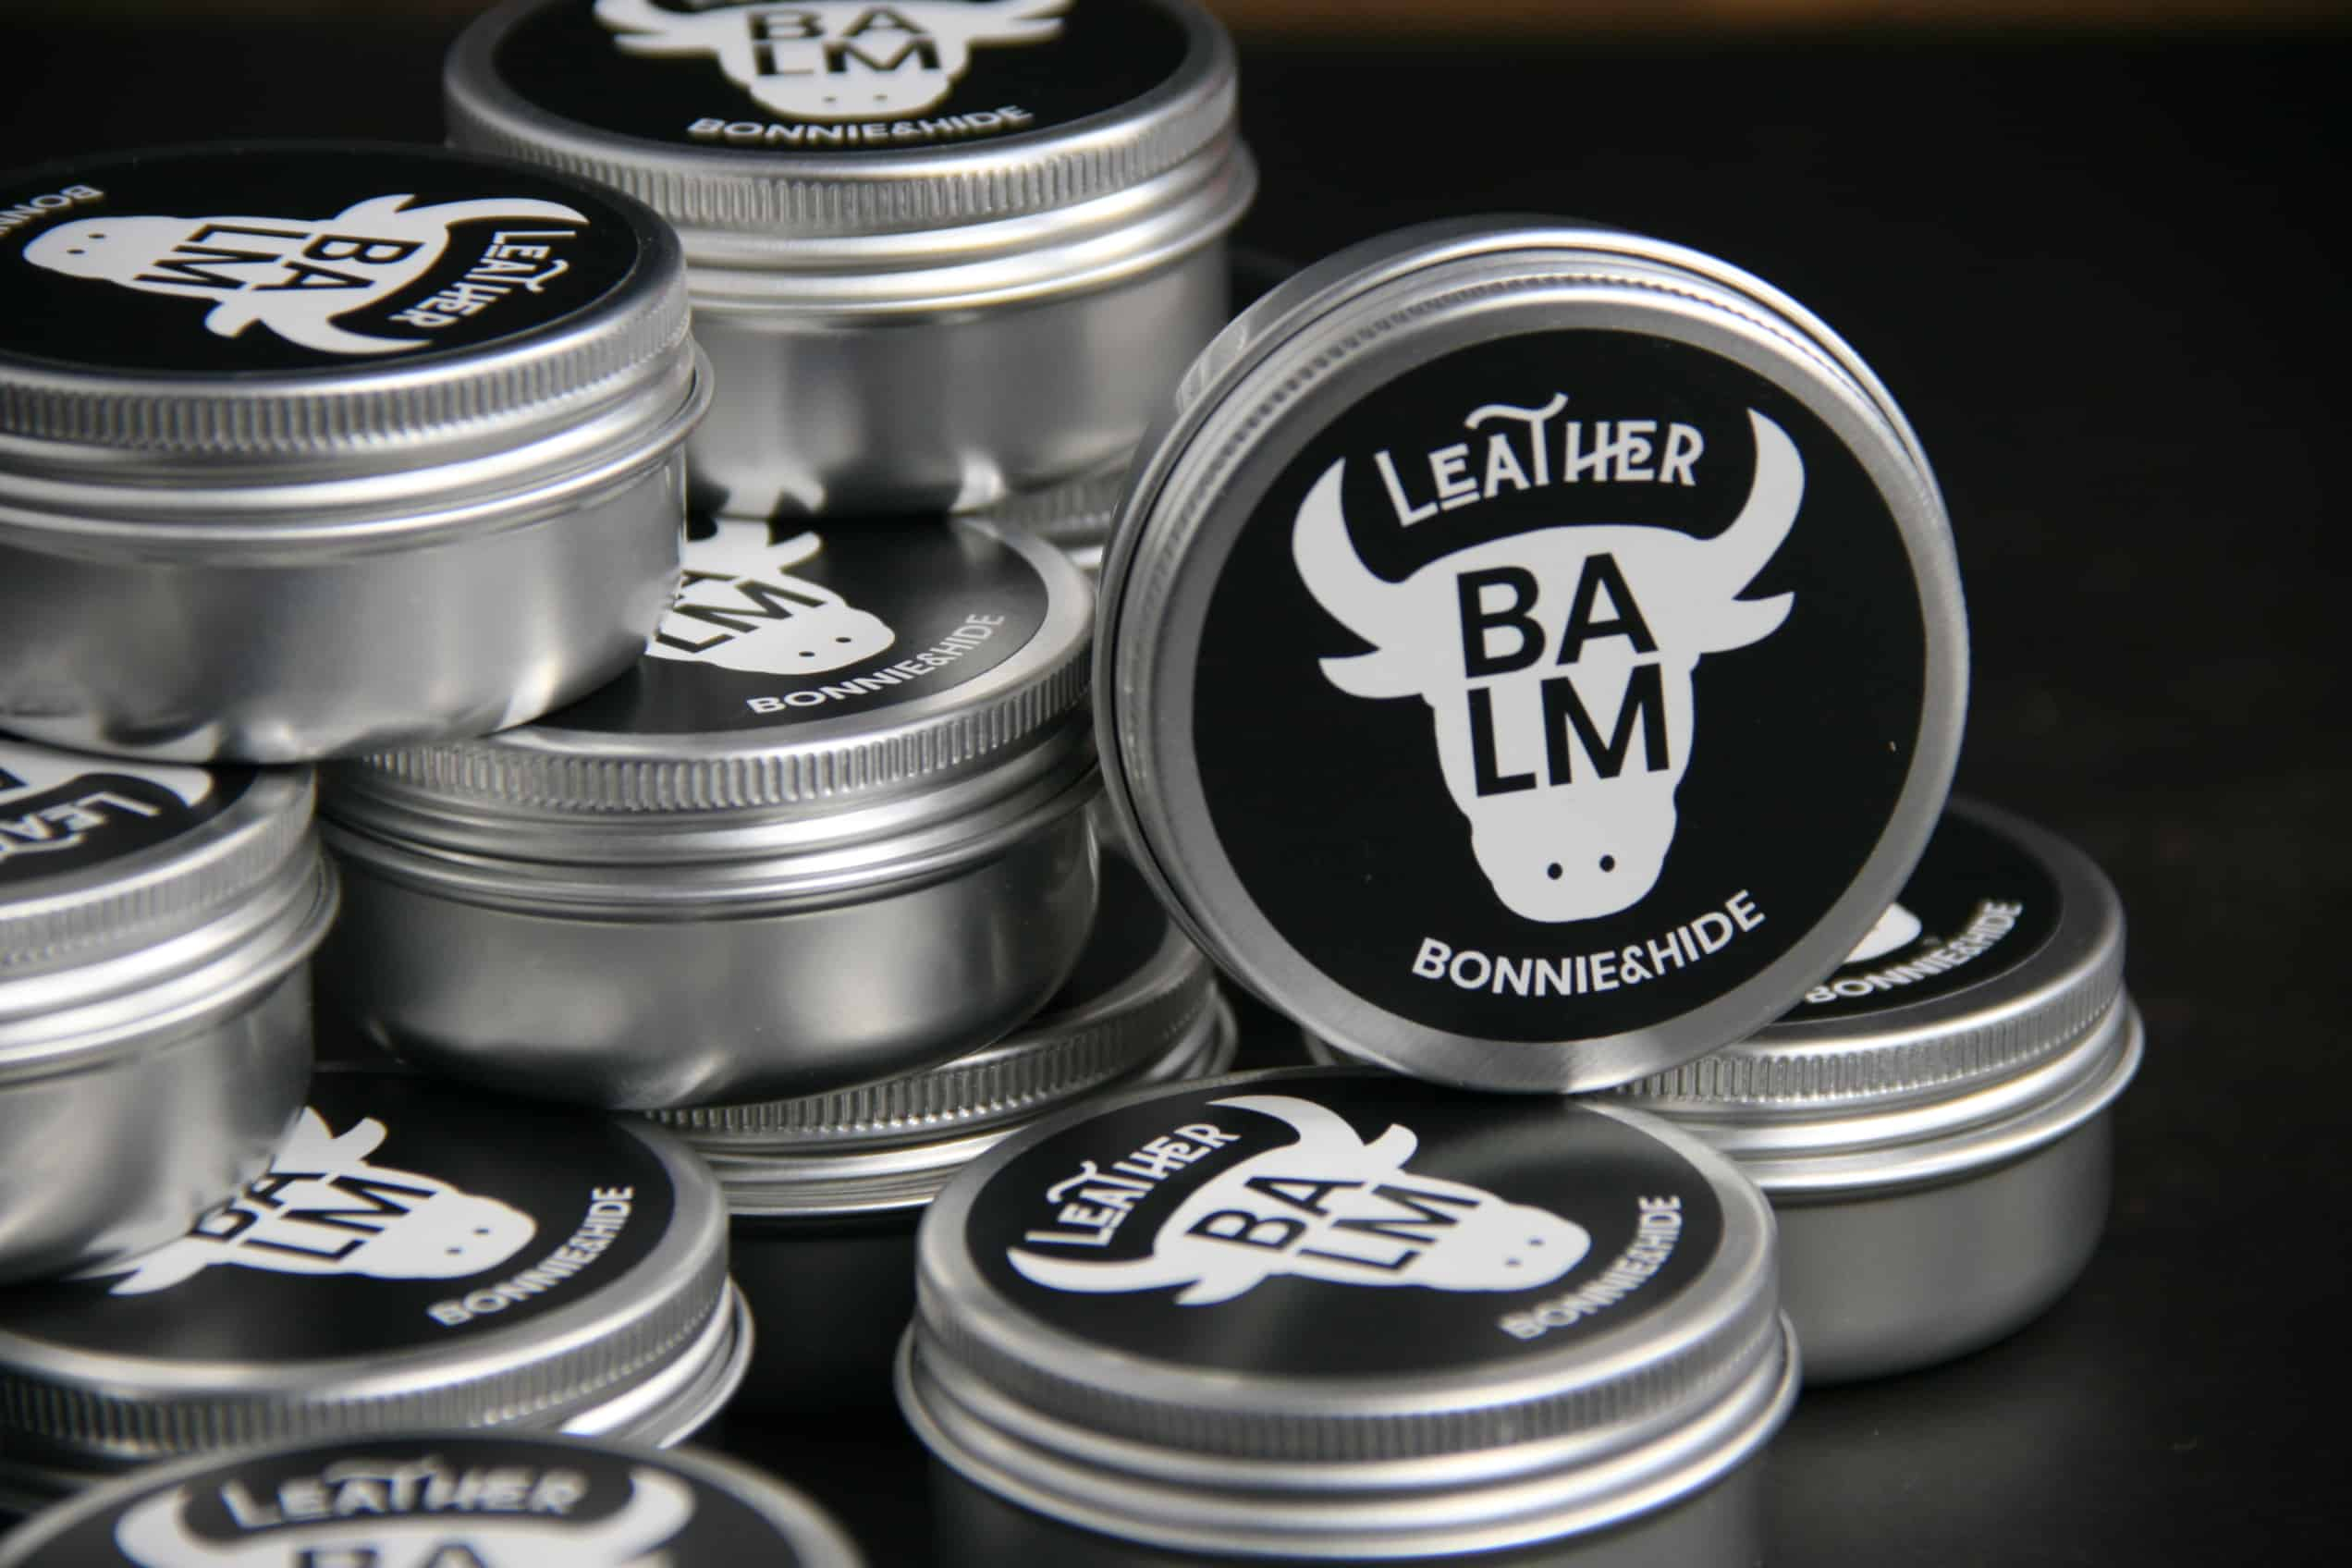 leather balm container